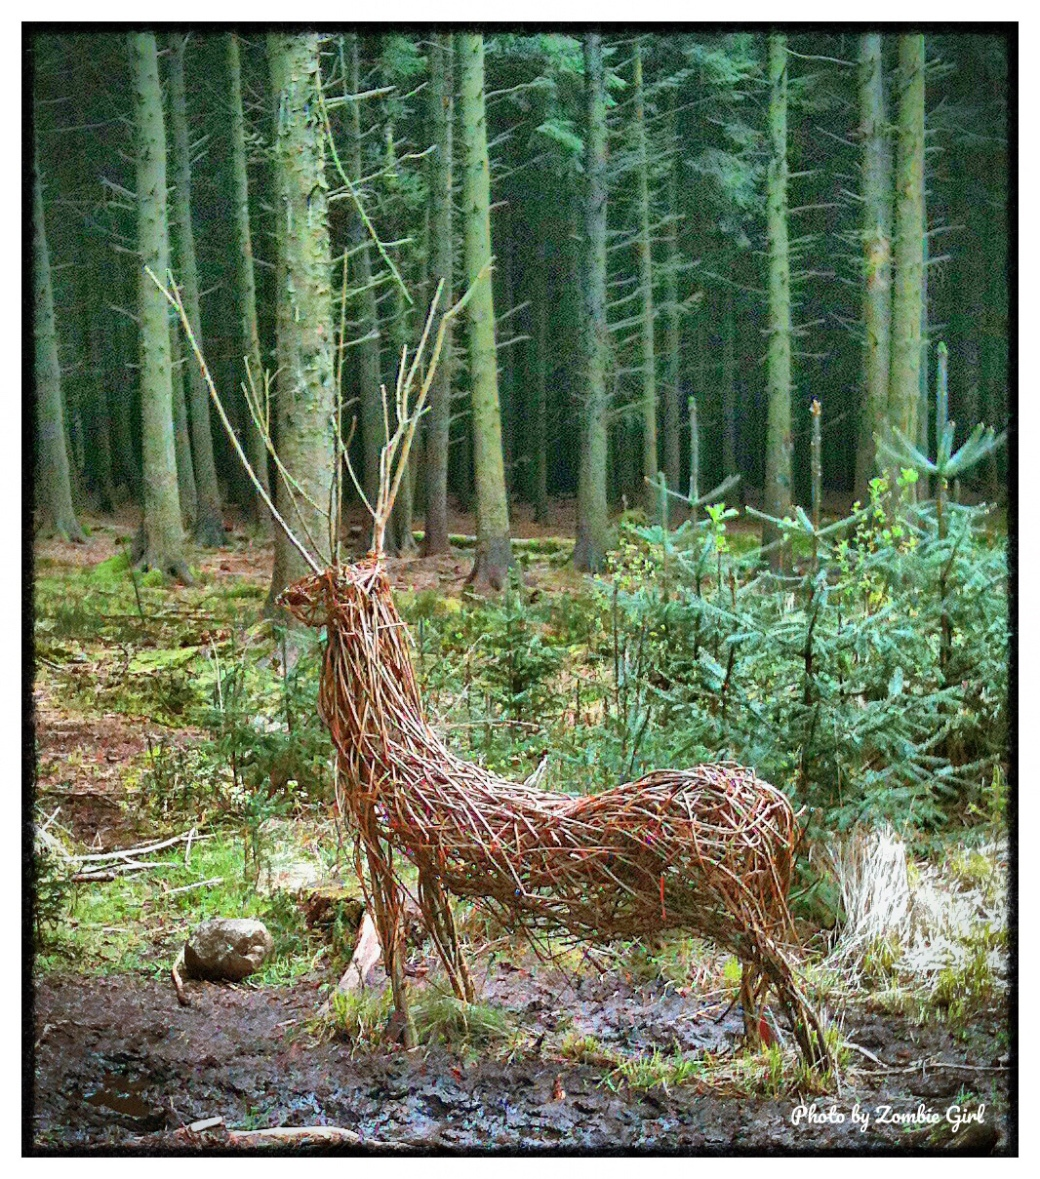 Living art work of a deer in the forest